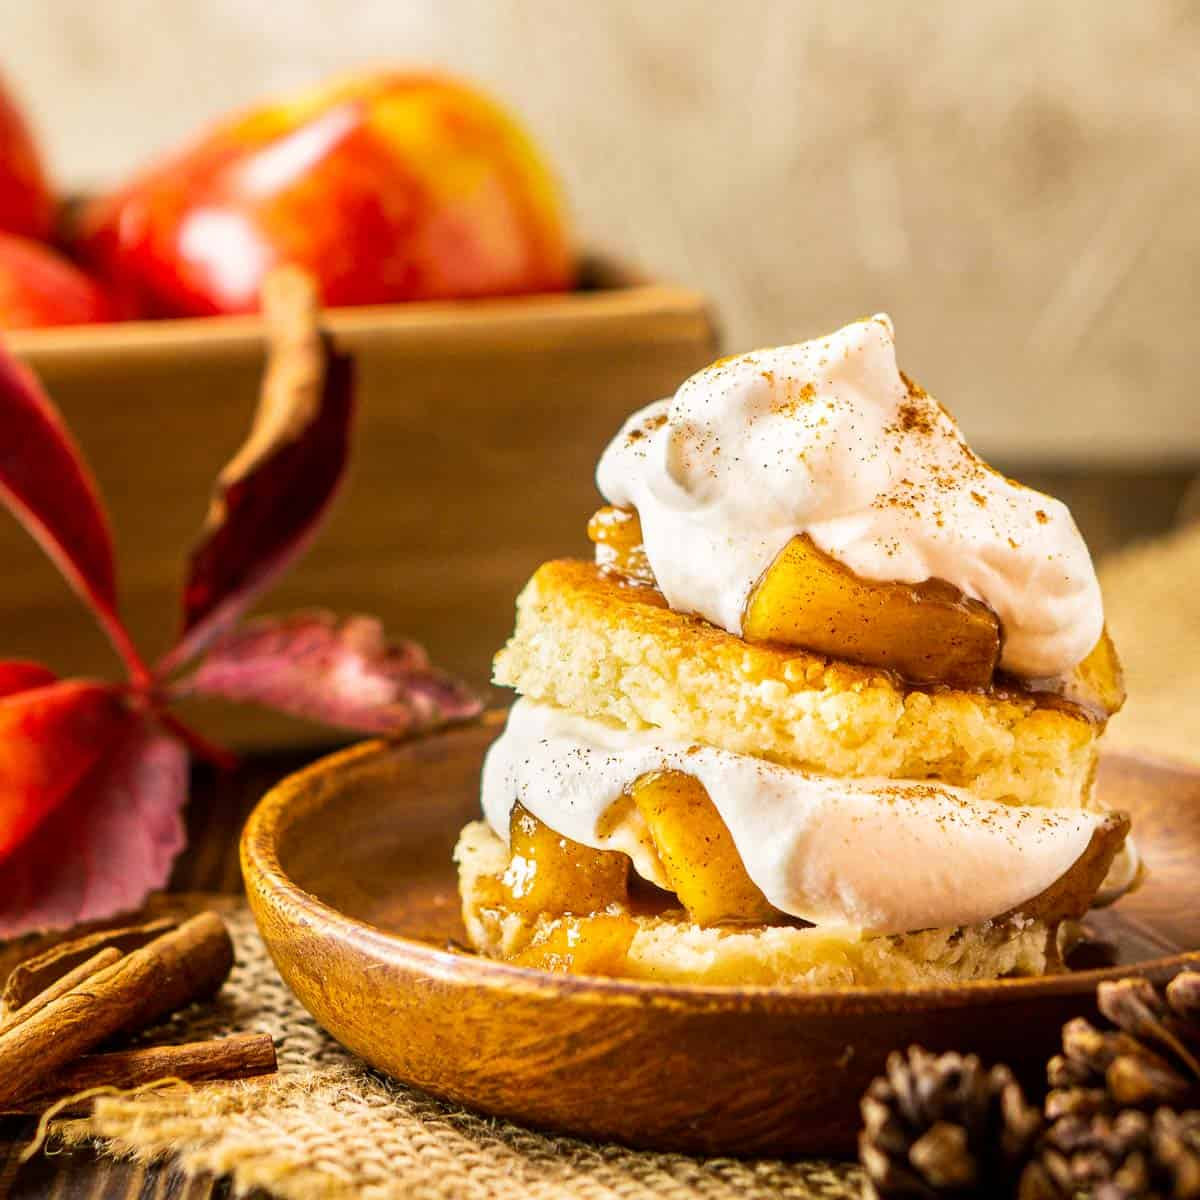 A stack of apple shortcakes on a wooden plate with a box of apples behind it.